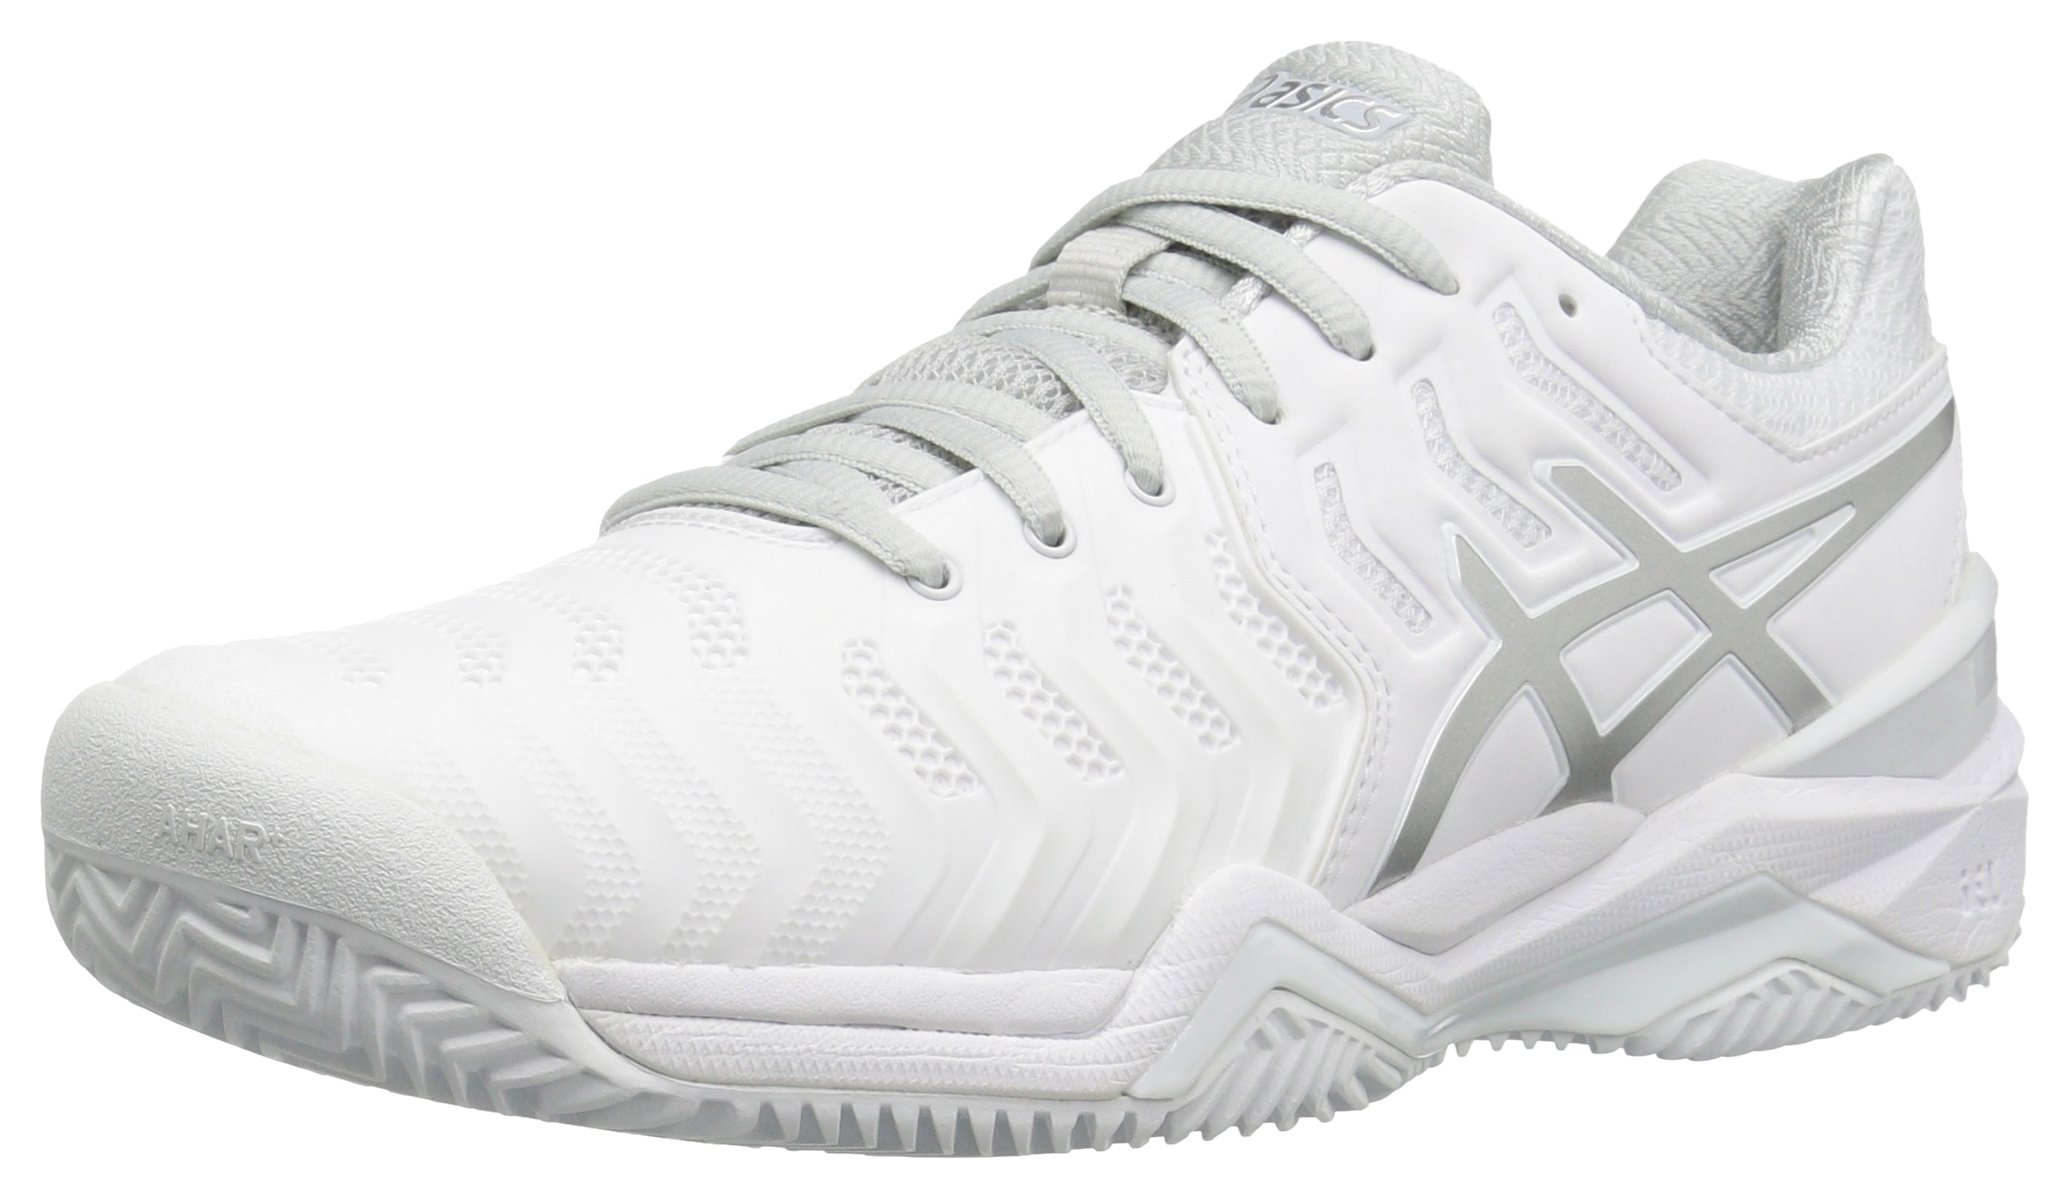 ASICS Women's Gel-Resolution 7 Clay Court Tennis Shoe, White/Silver, 5 M US